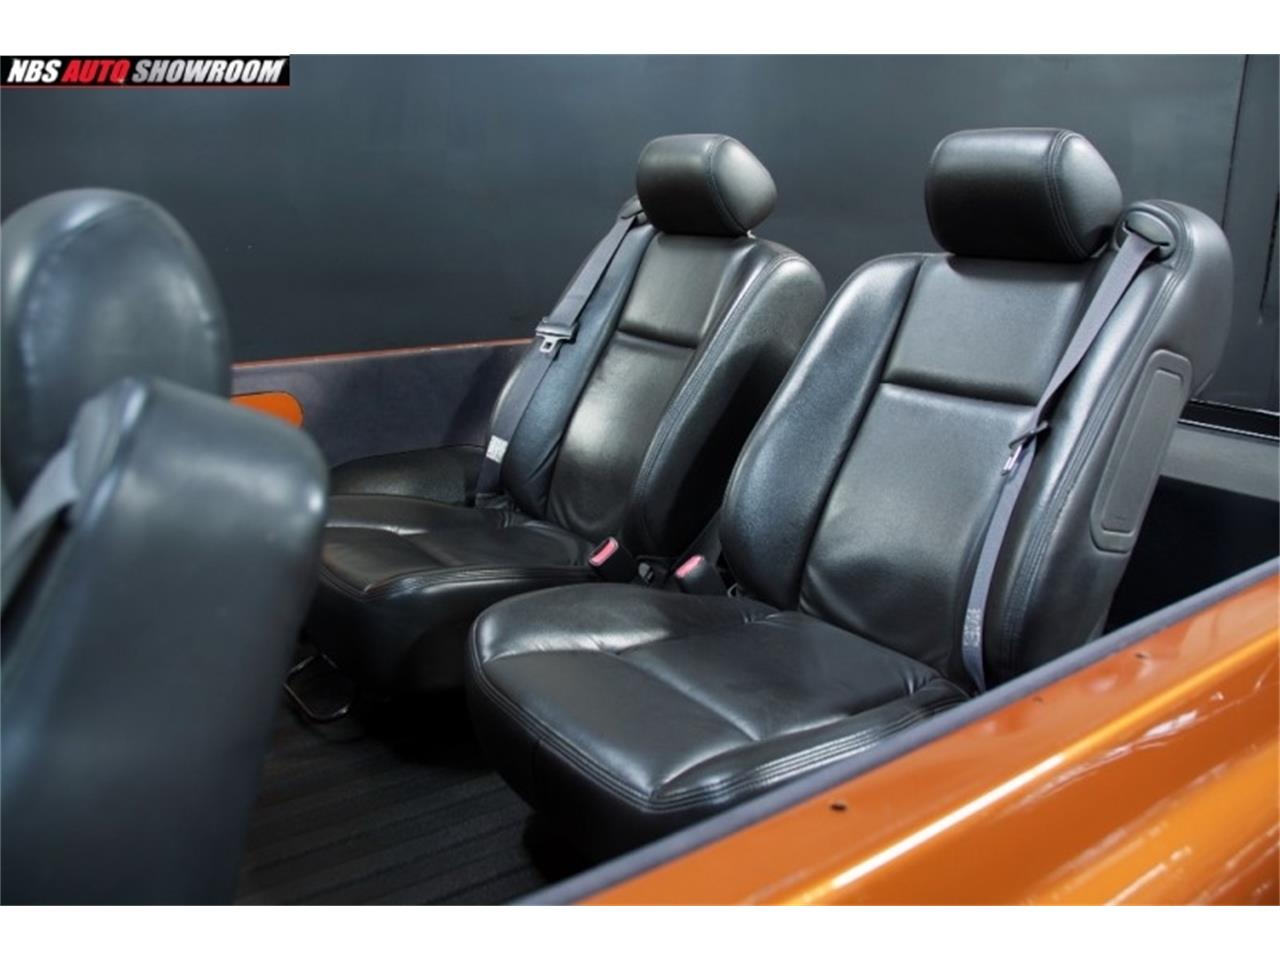 Large Picture of 1970 Blazer Offered by NBS Auto Showroom - PR1D